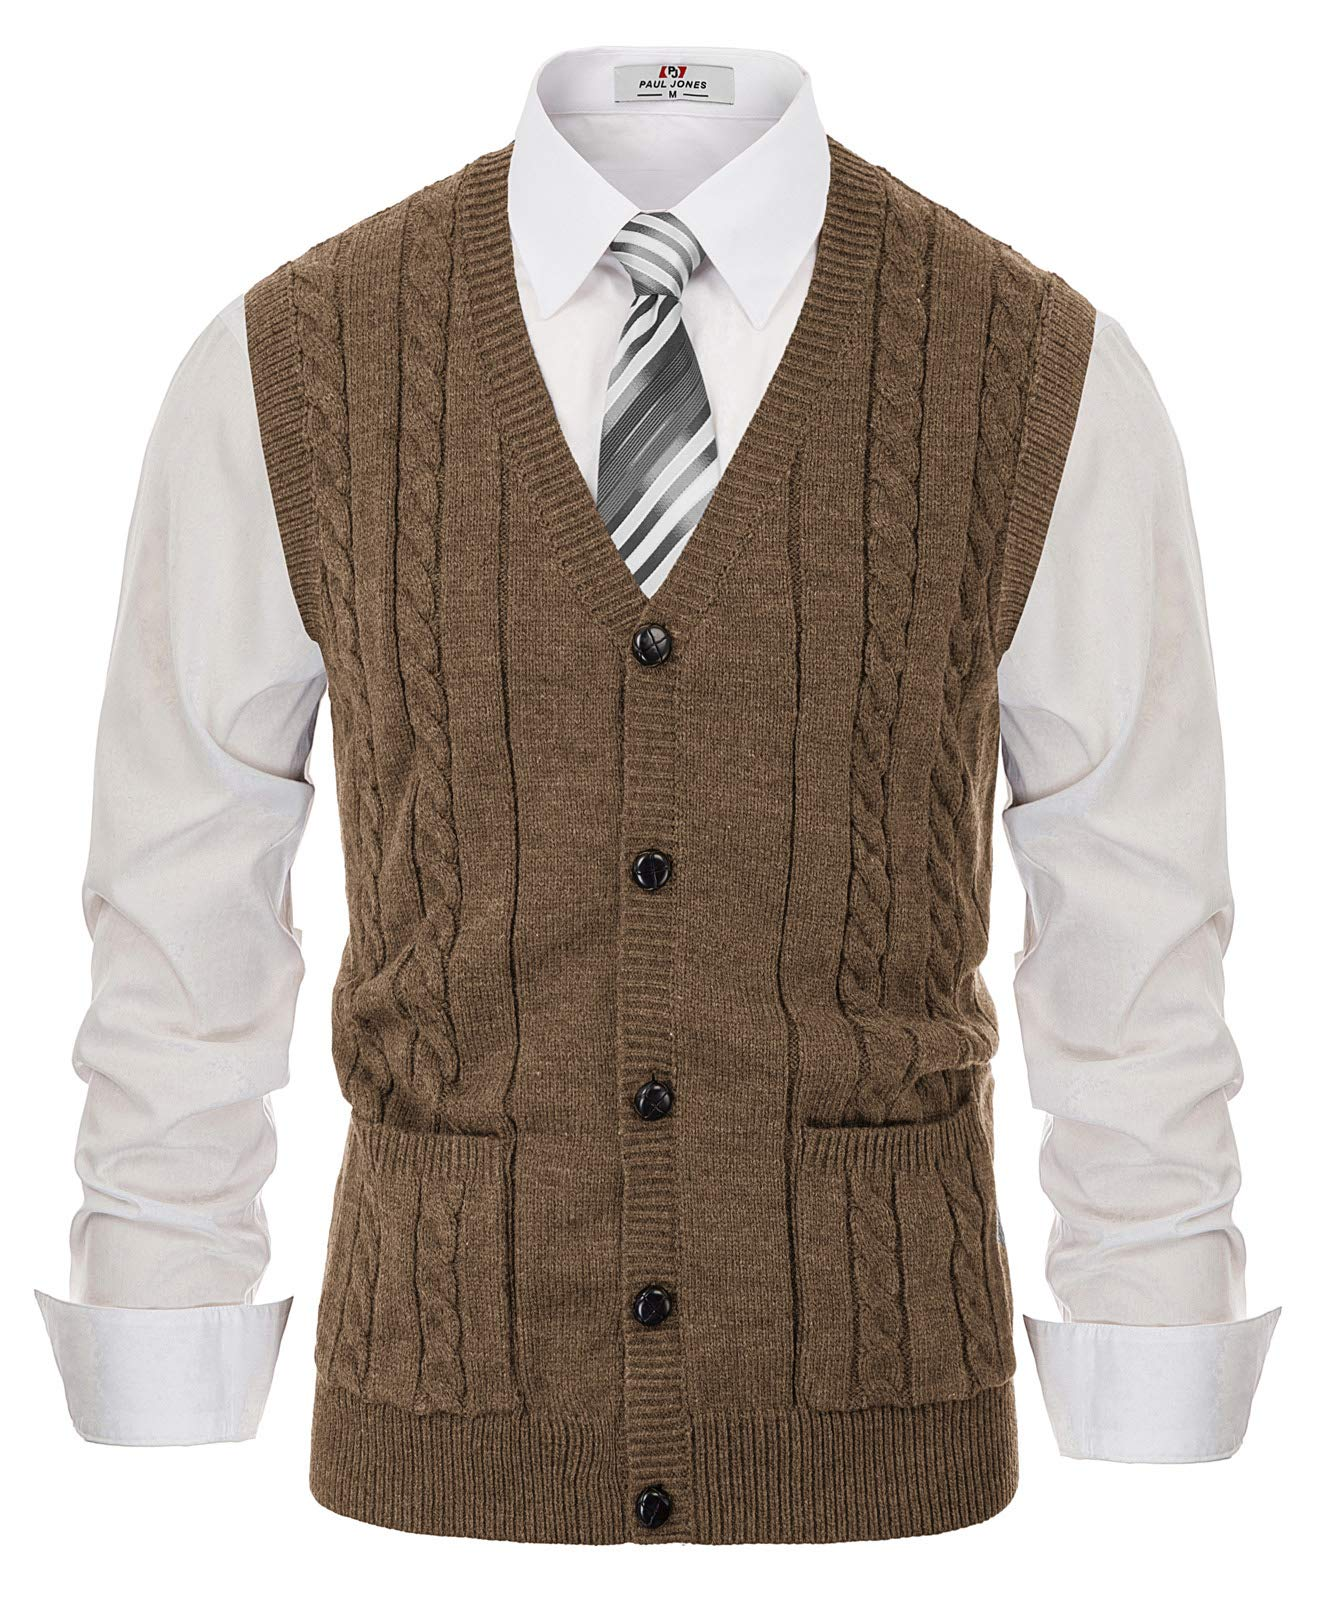 PJ PAUL JONES Men V Neck Sweater Vest Knitwear Sleeveless Cable Cardigan Sweater Coffee, M by PJ PAUL JONES